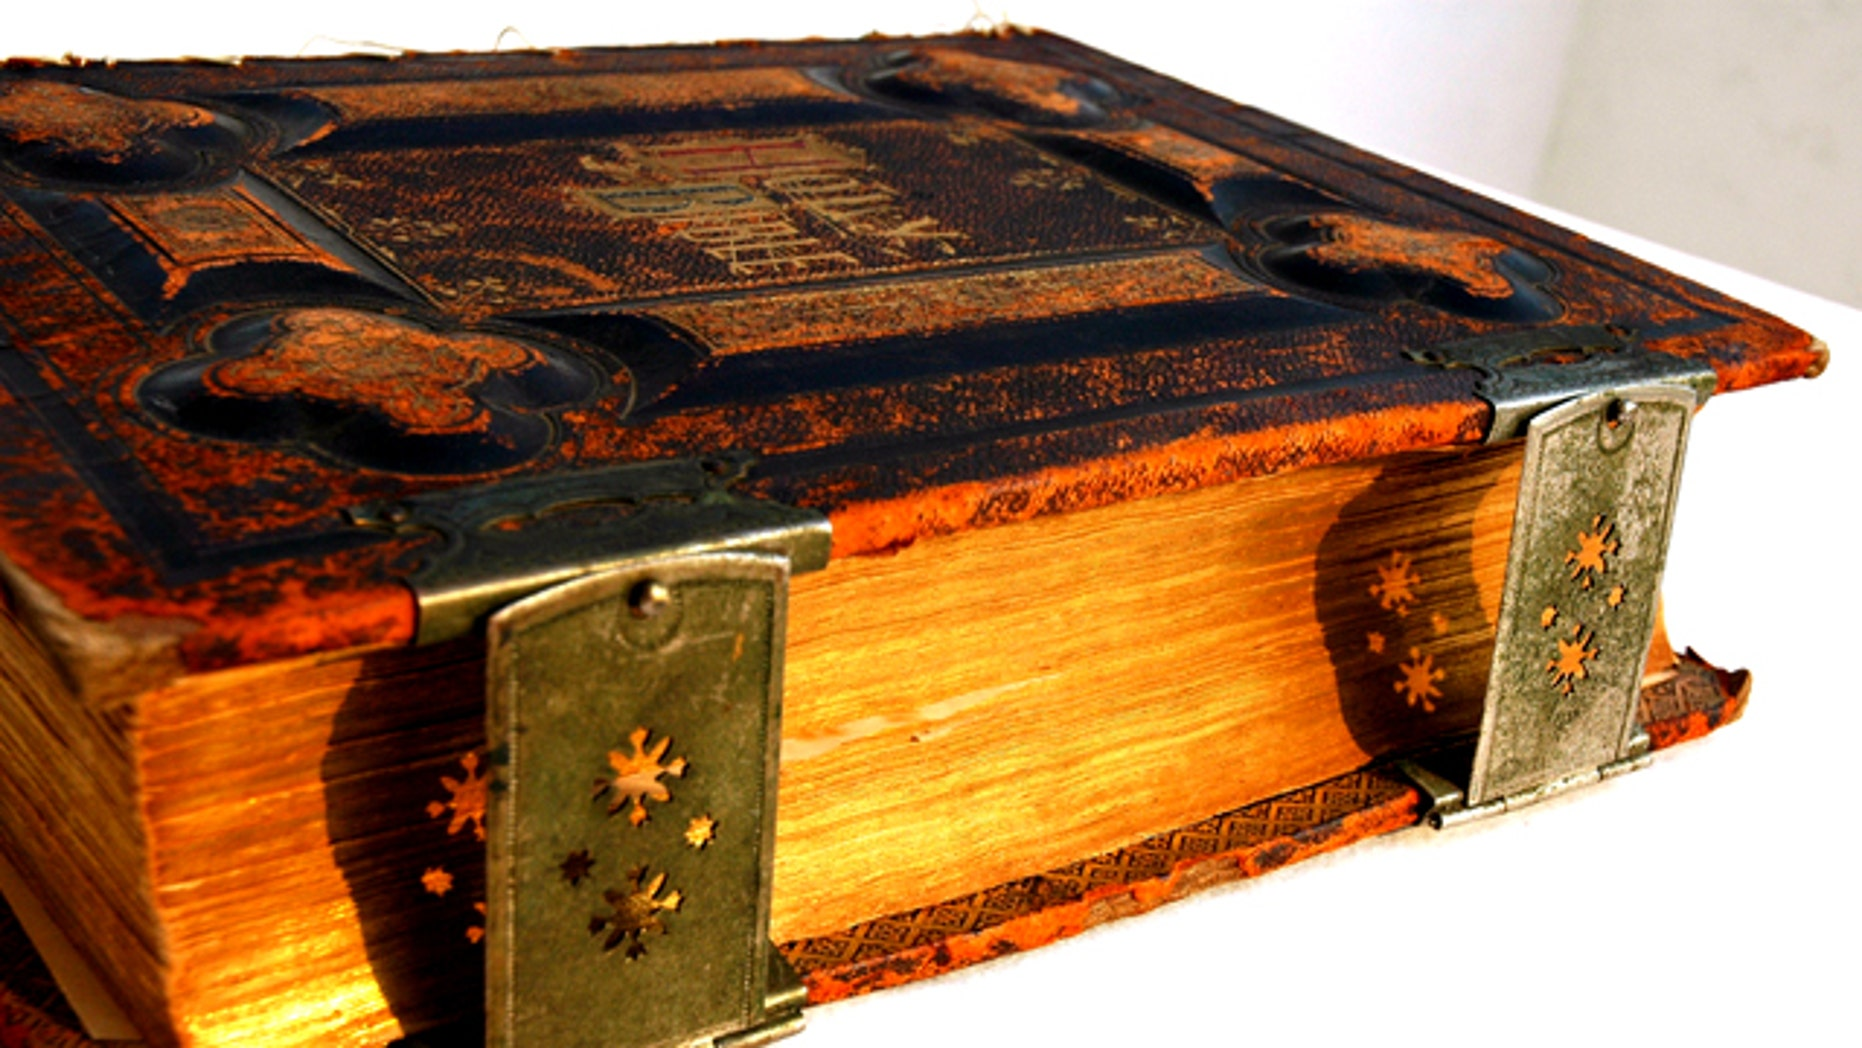 An antique copy of the Bible, printed in 1885, with metal clasps, and leather binding, is photographed in Puerto Vallarta, Jalisco, Mexico. Scientists are struggling to reconcile the tales in the Bible with modern science.